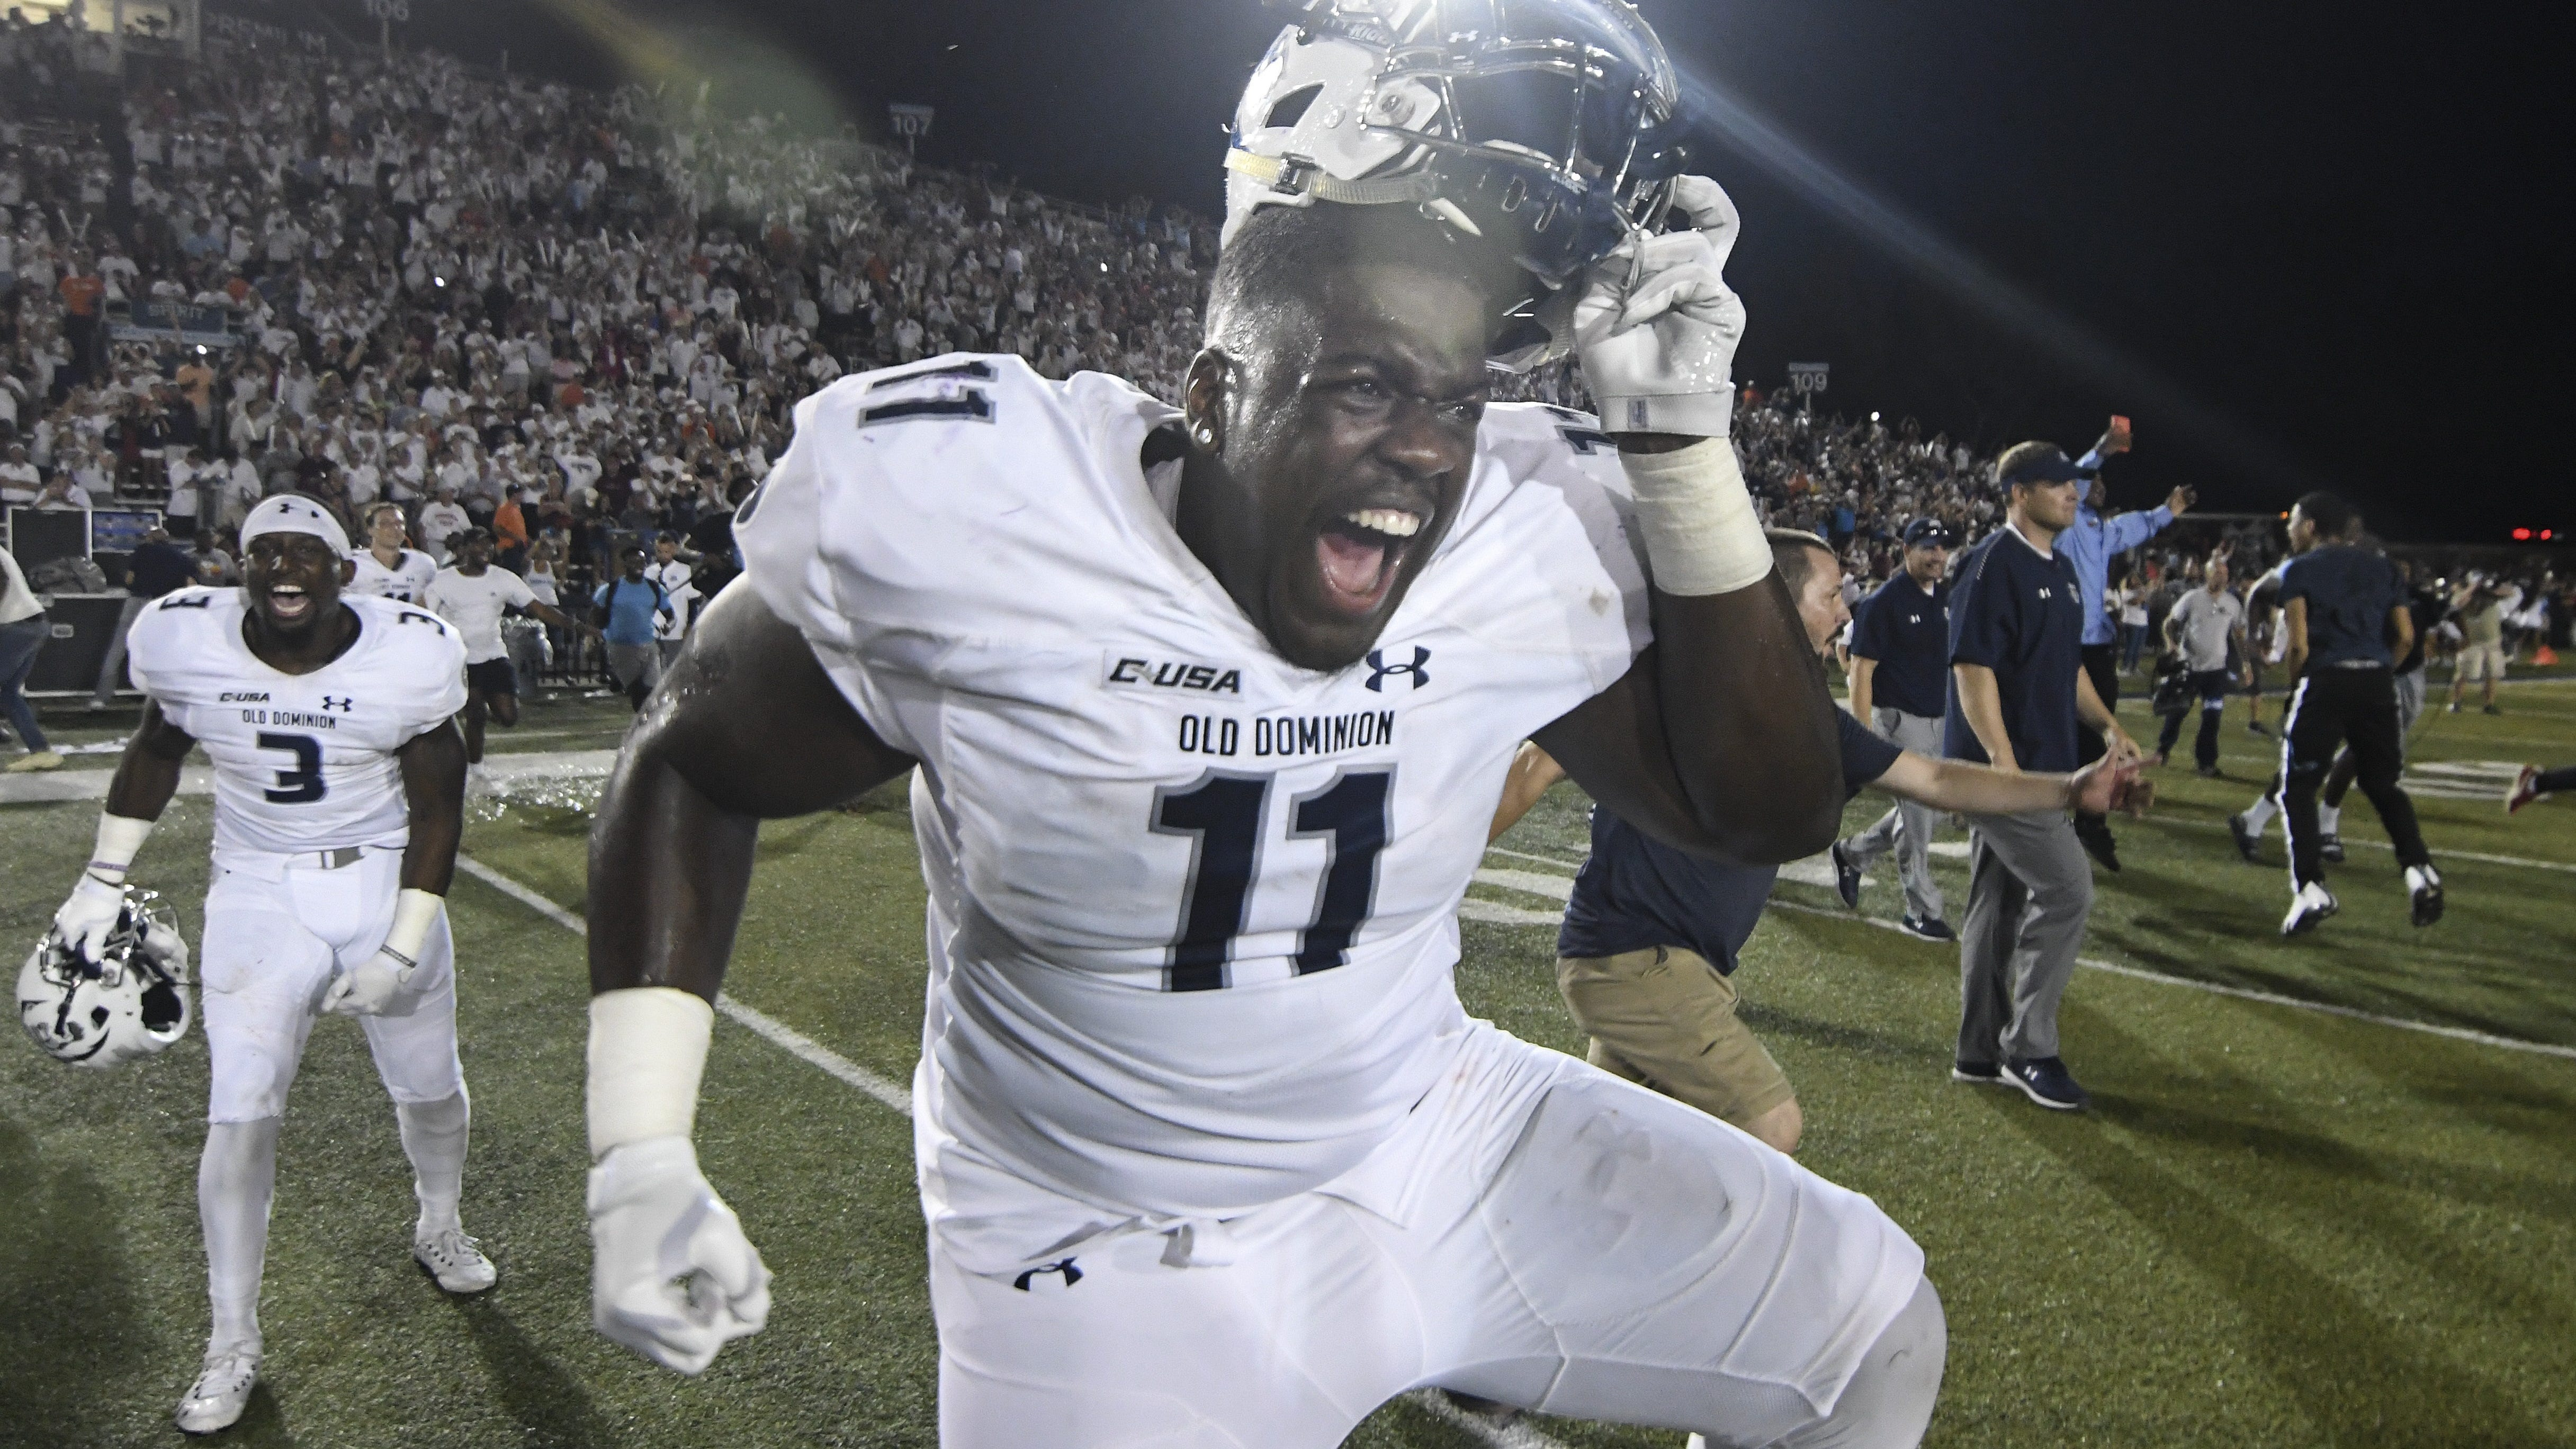 Miles Fox and Old Dominion celebrate their stunning win over No. 10 Virginia Tech.